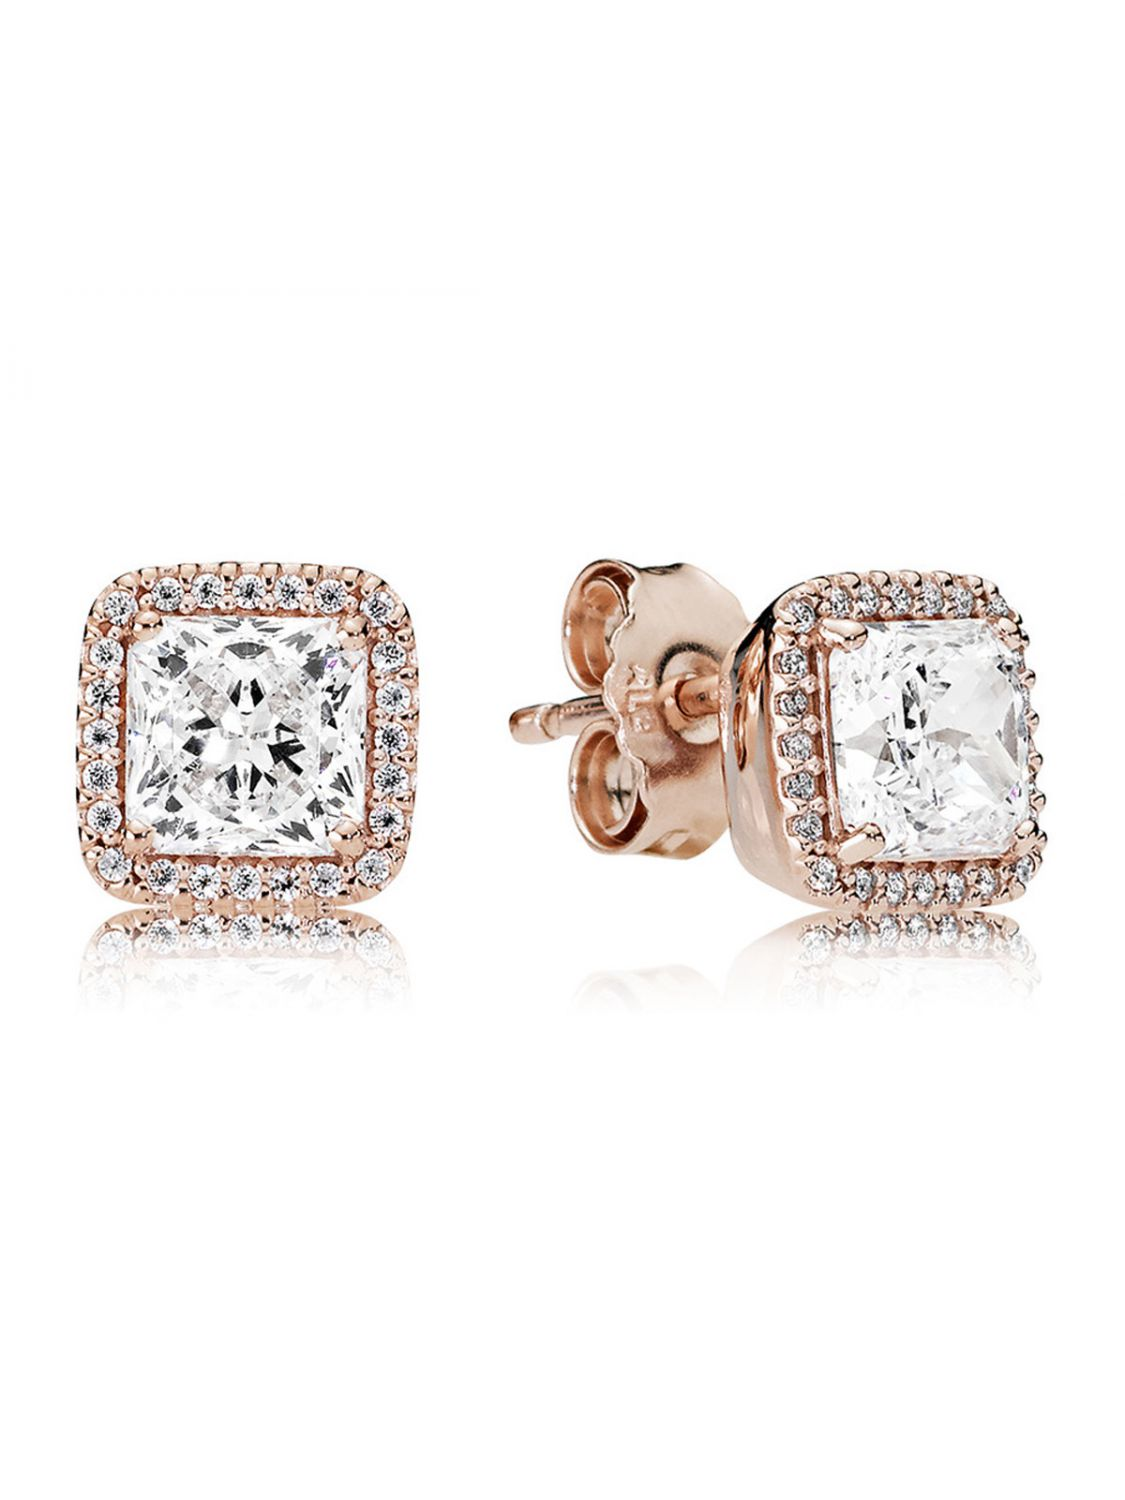 7536392a8 Pandora Elegant Beauty Stud Earrings - Image Of Earring